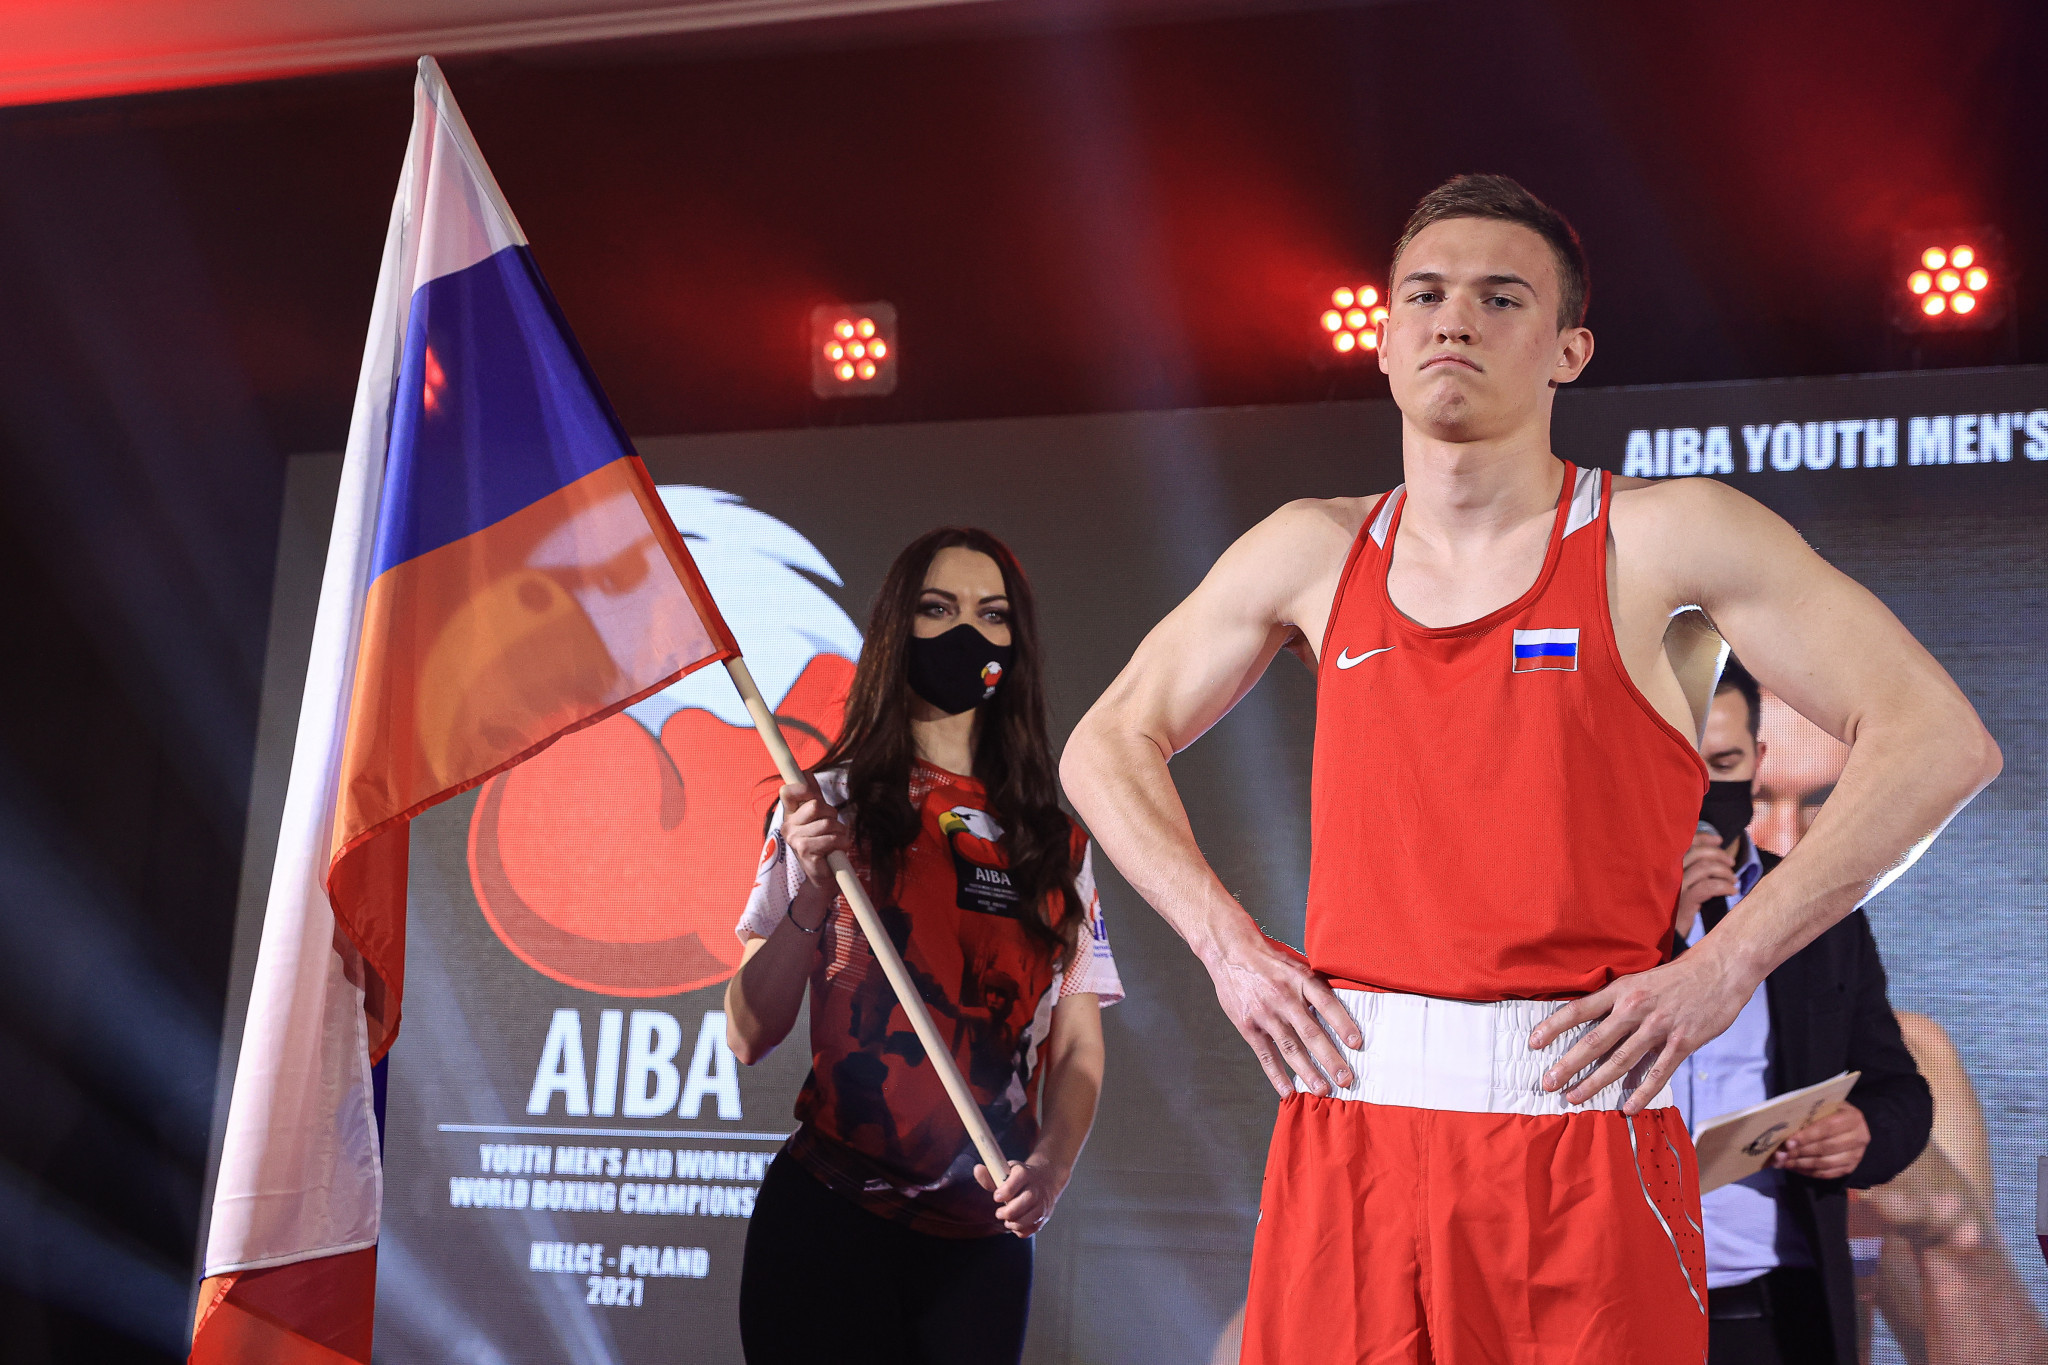 Kazakhstan and Russia claim two golds on men's finals day at AIBA Youth World Championships